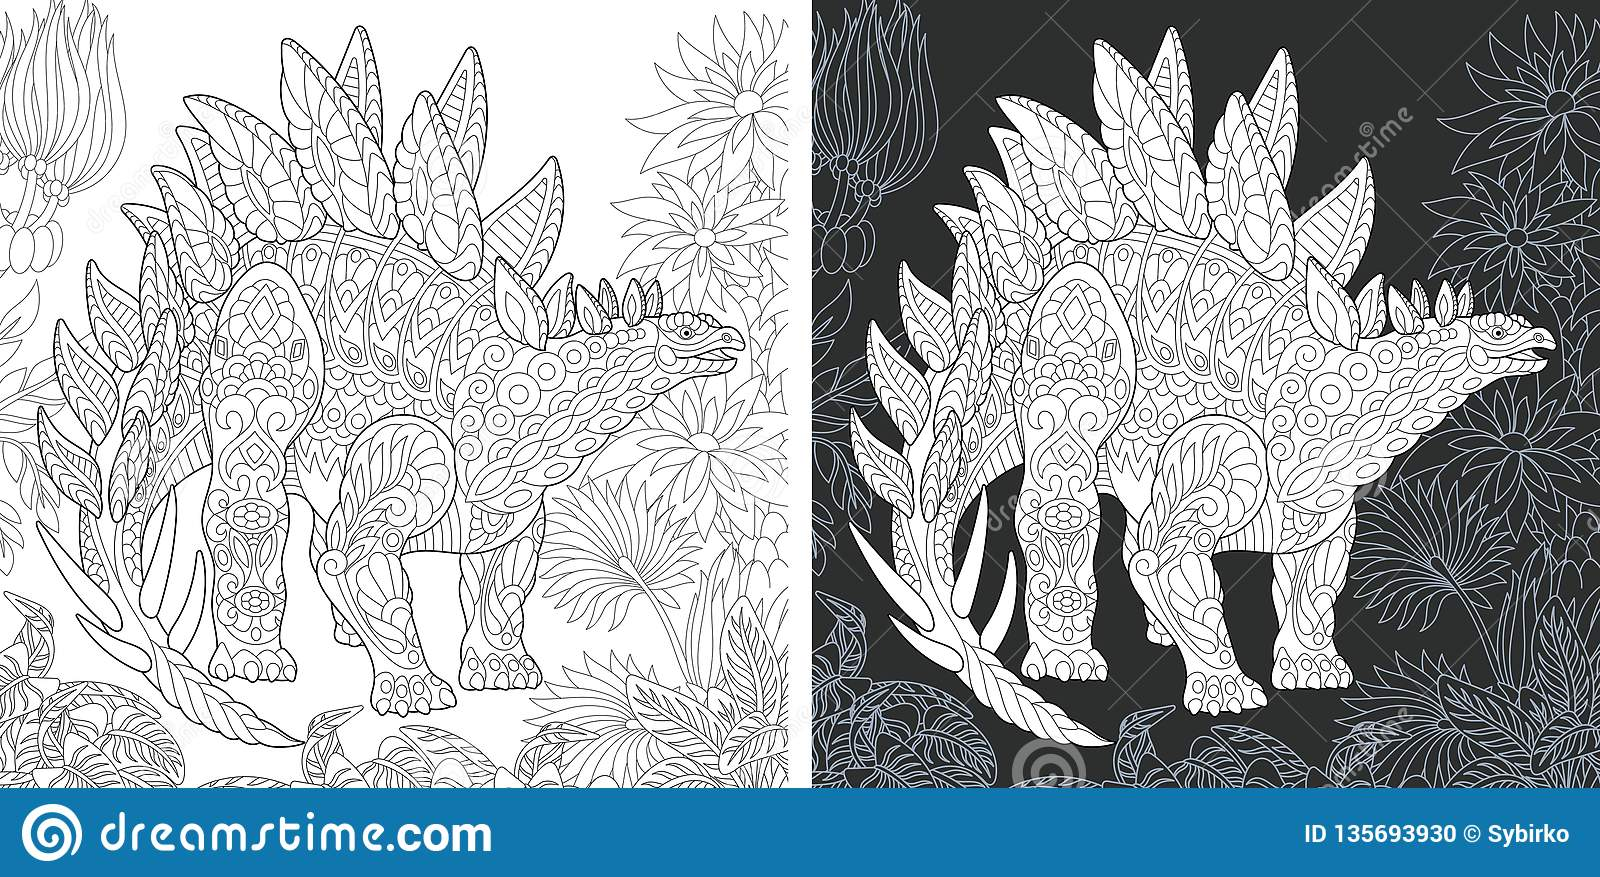 Coloring Pages With Stegosaurus Stock Vector Illustration Of Chalkboard Coloring 135693930